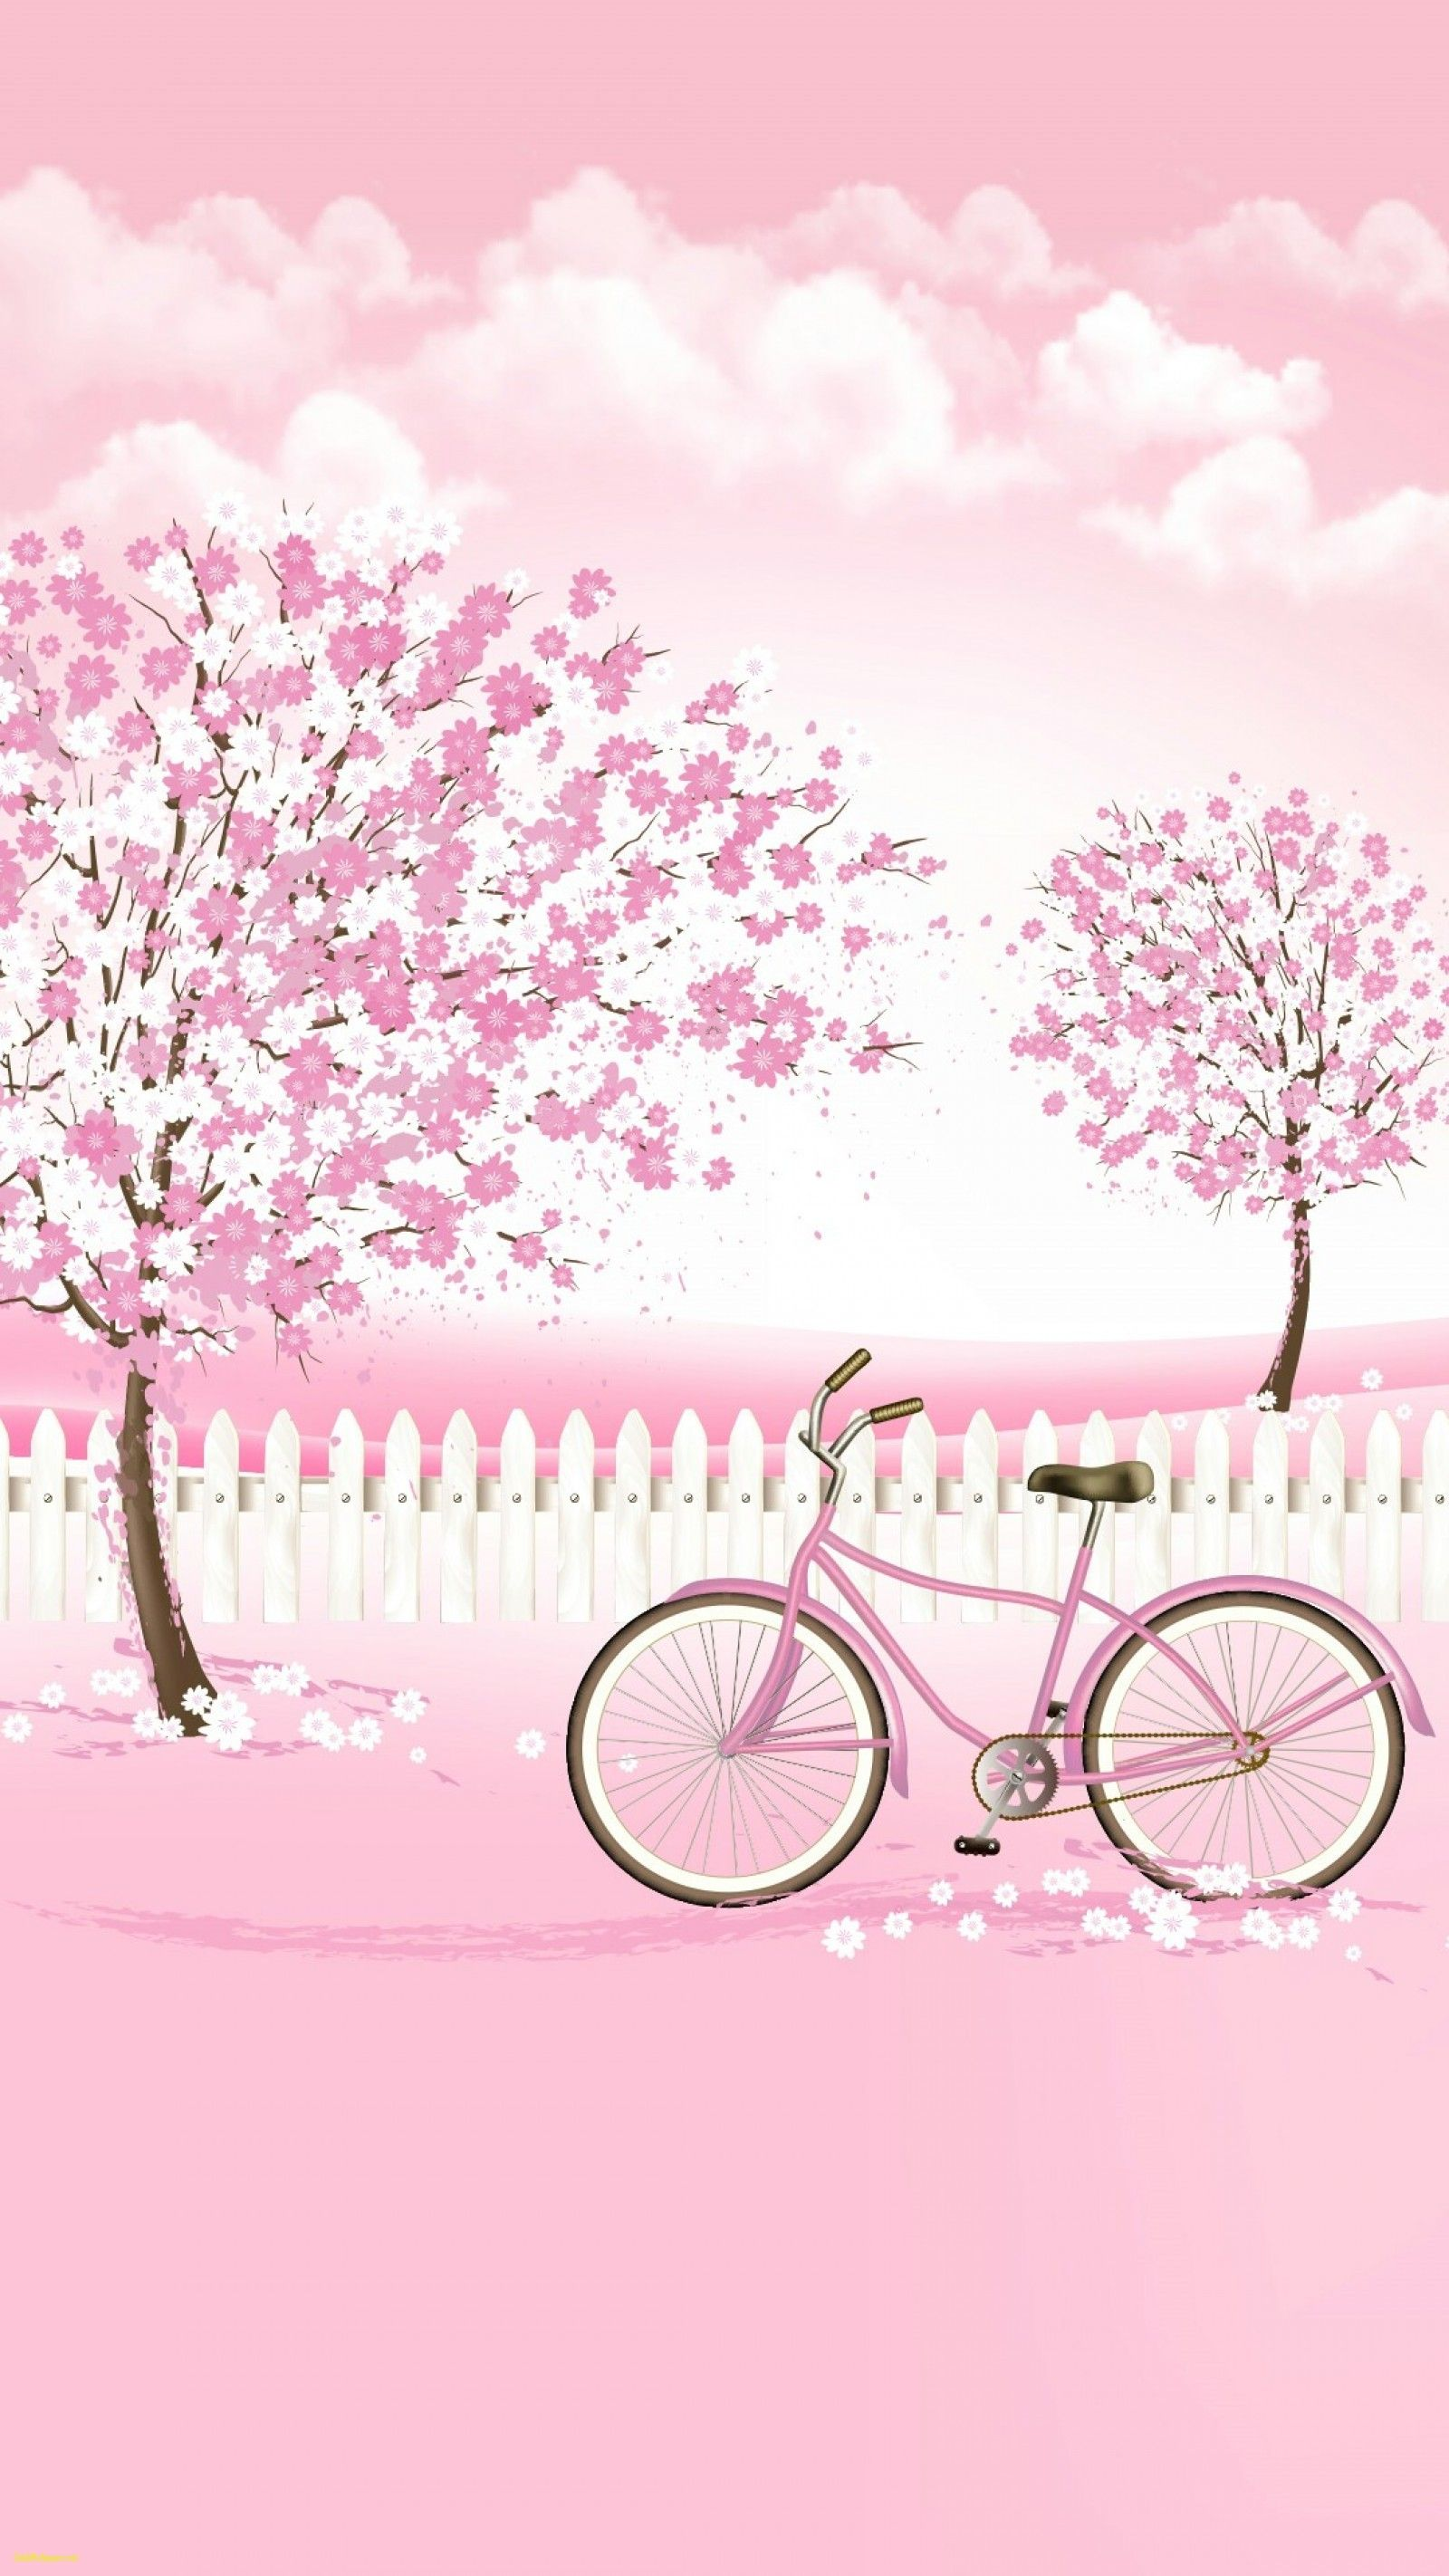 Cute Pink And White Background Cute Wallpaper For Phone Cute Girl Wallpaper Pink And White Background